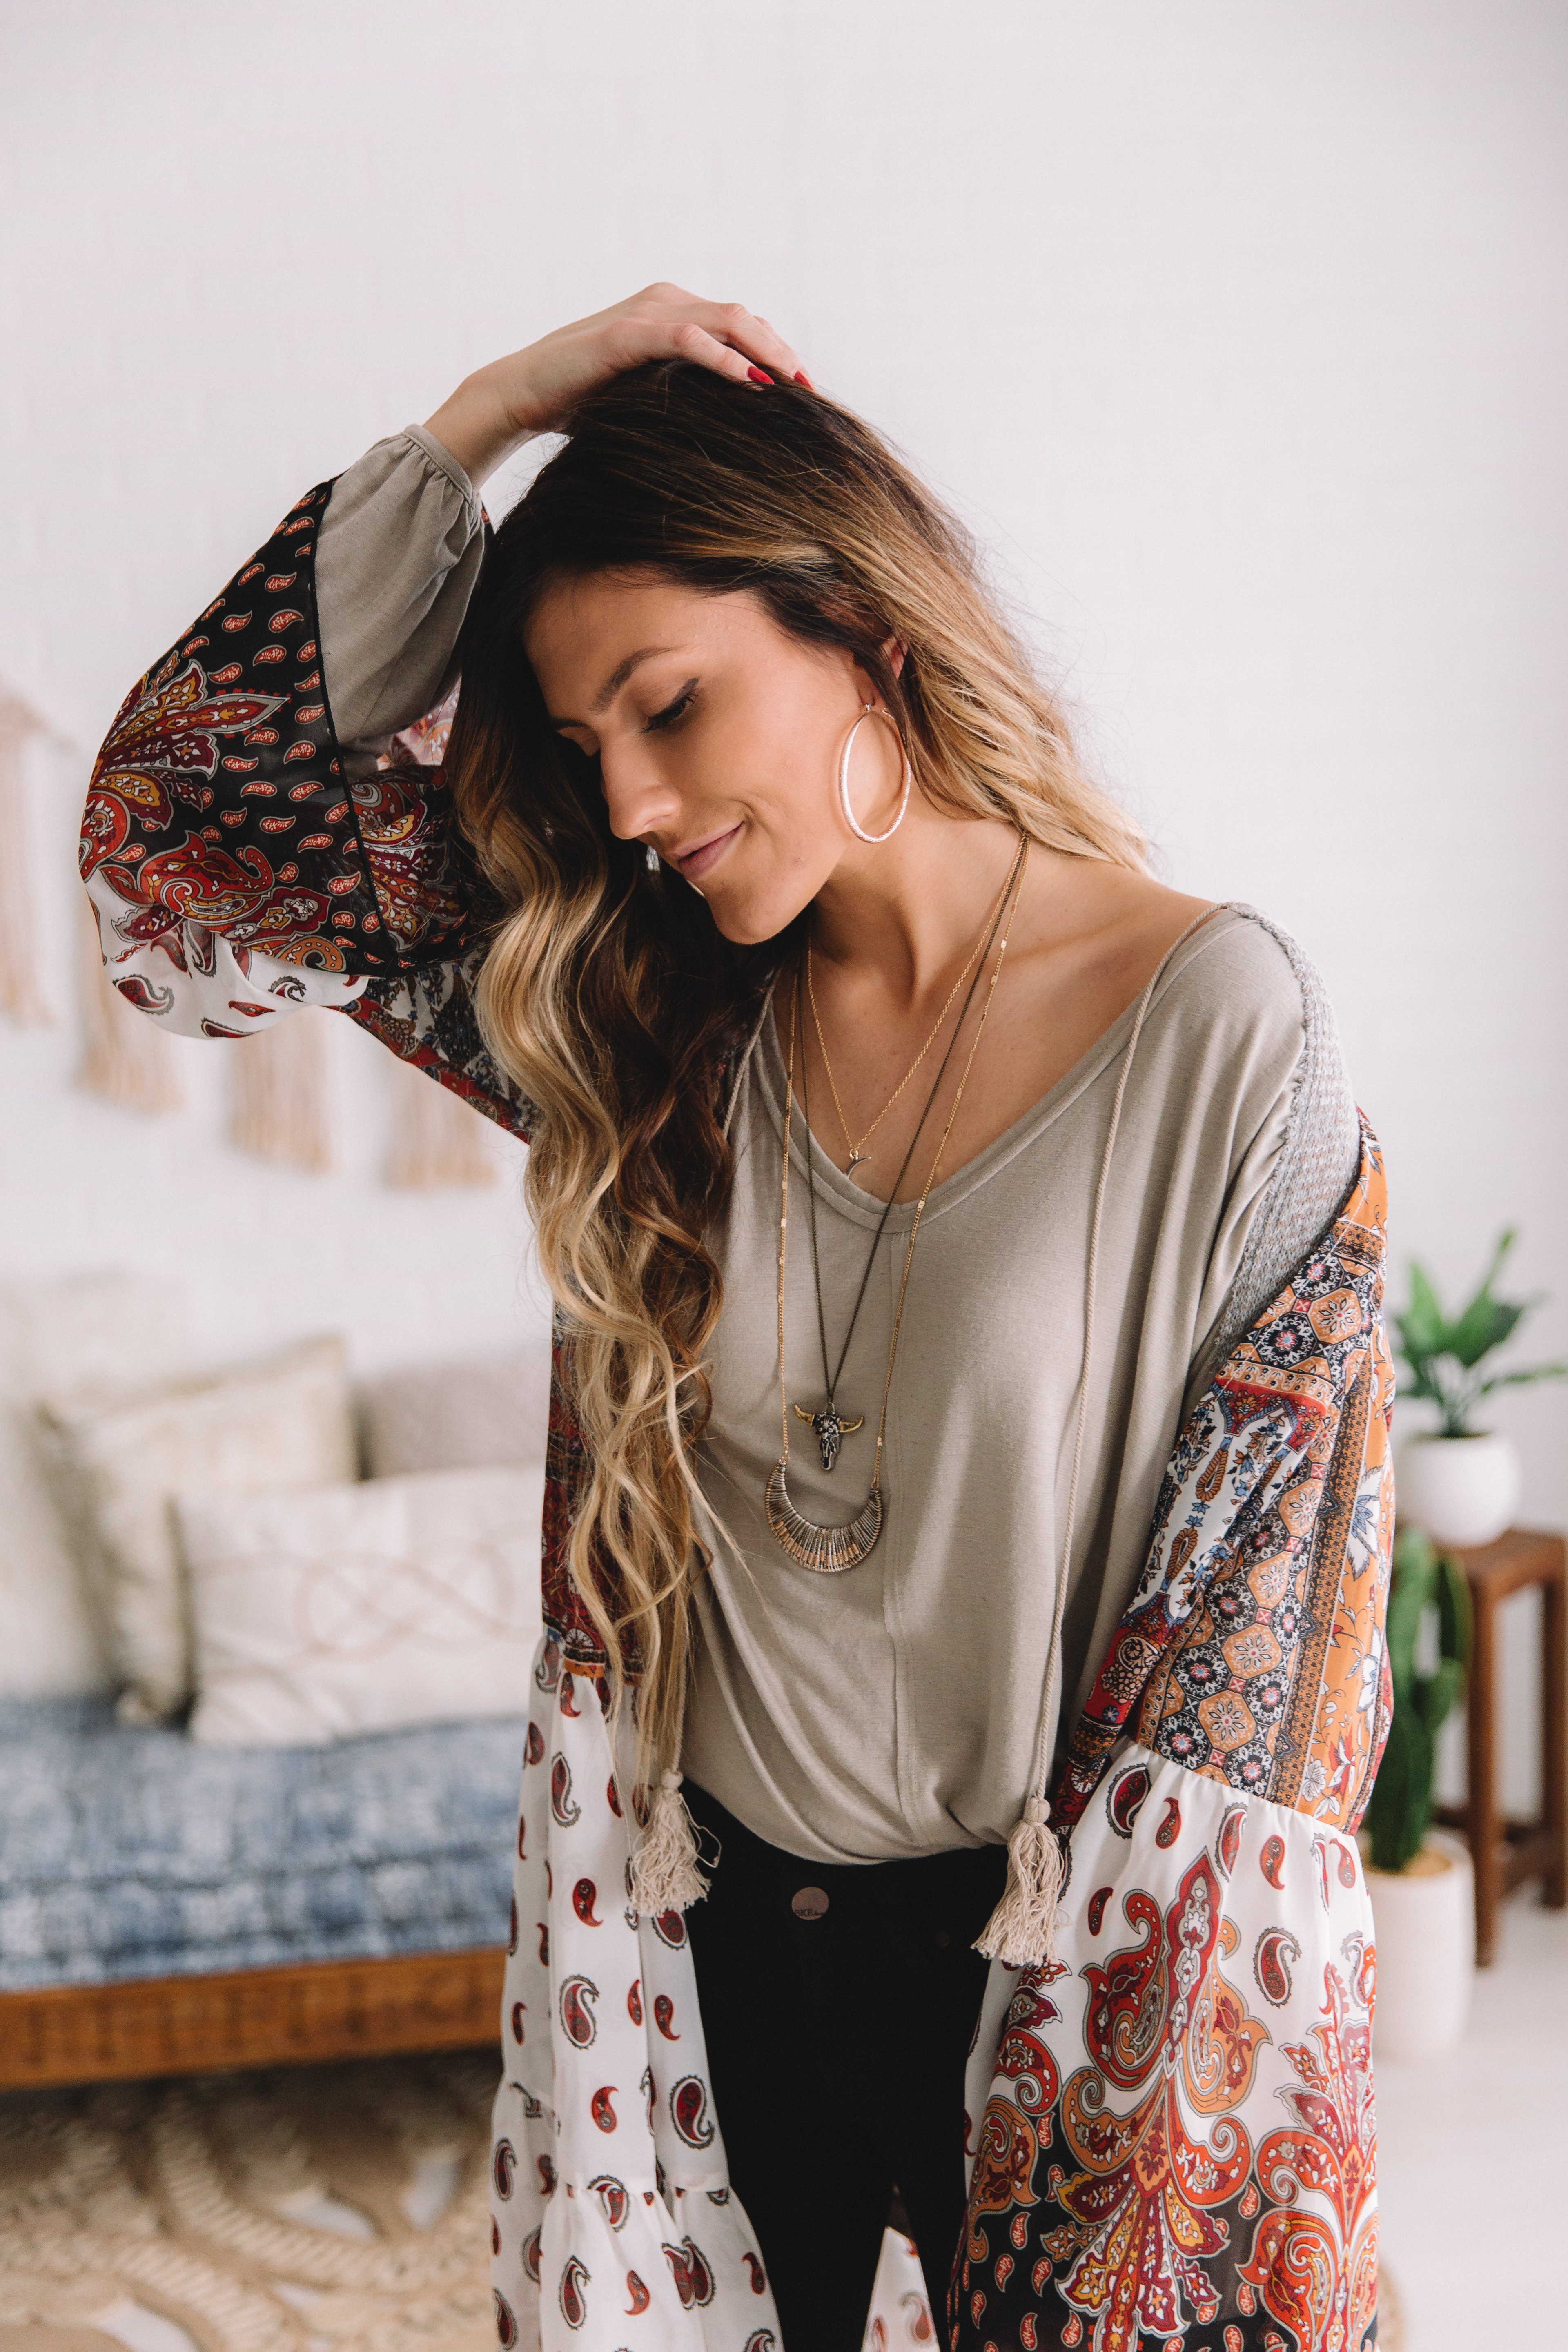 Western Inspired Outfits From Buckle featuring a Gimmicks Paisley Kimono, bull skull and crescent moon pendent necklaces.